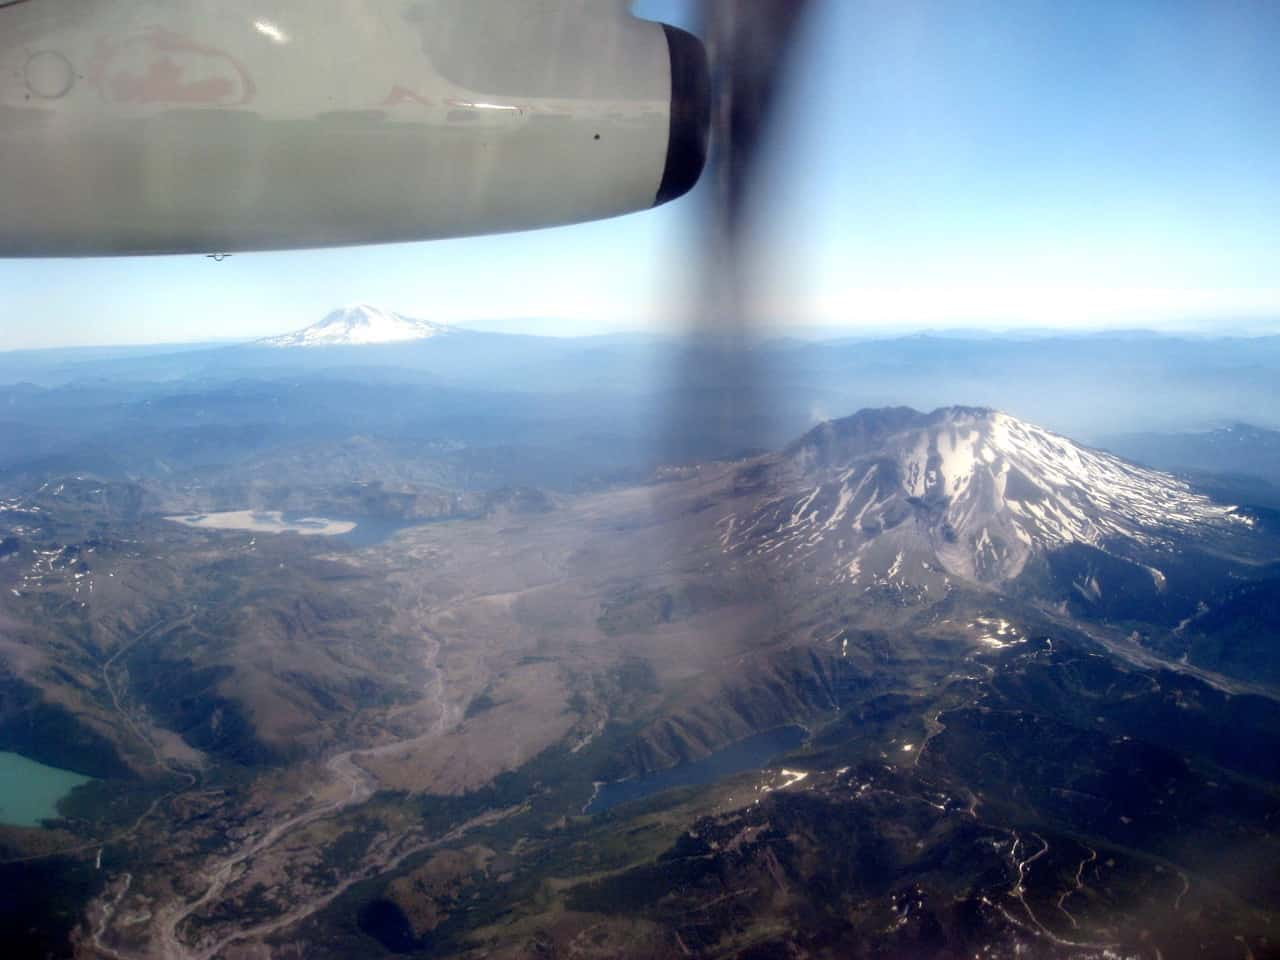 mt-st-helens-aerial-view-photo